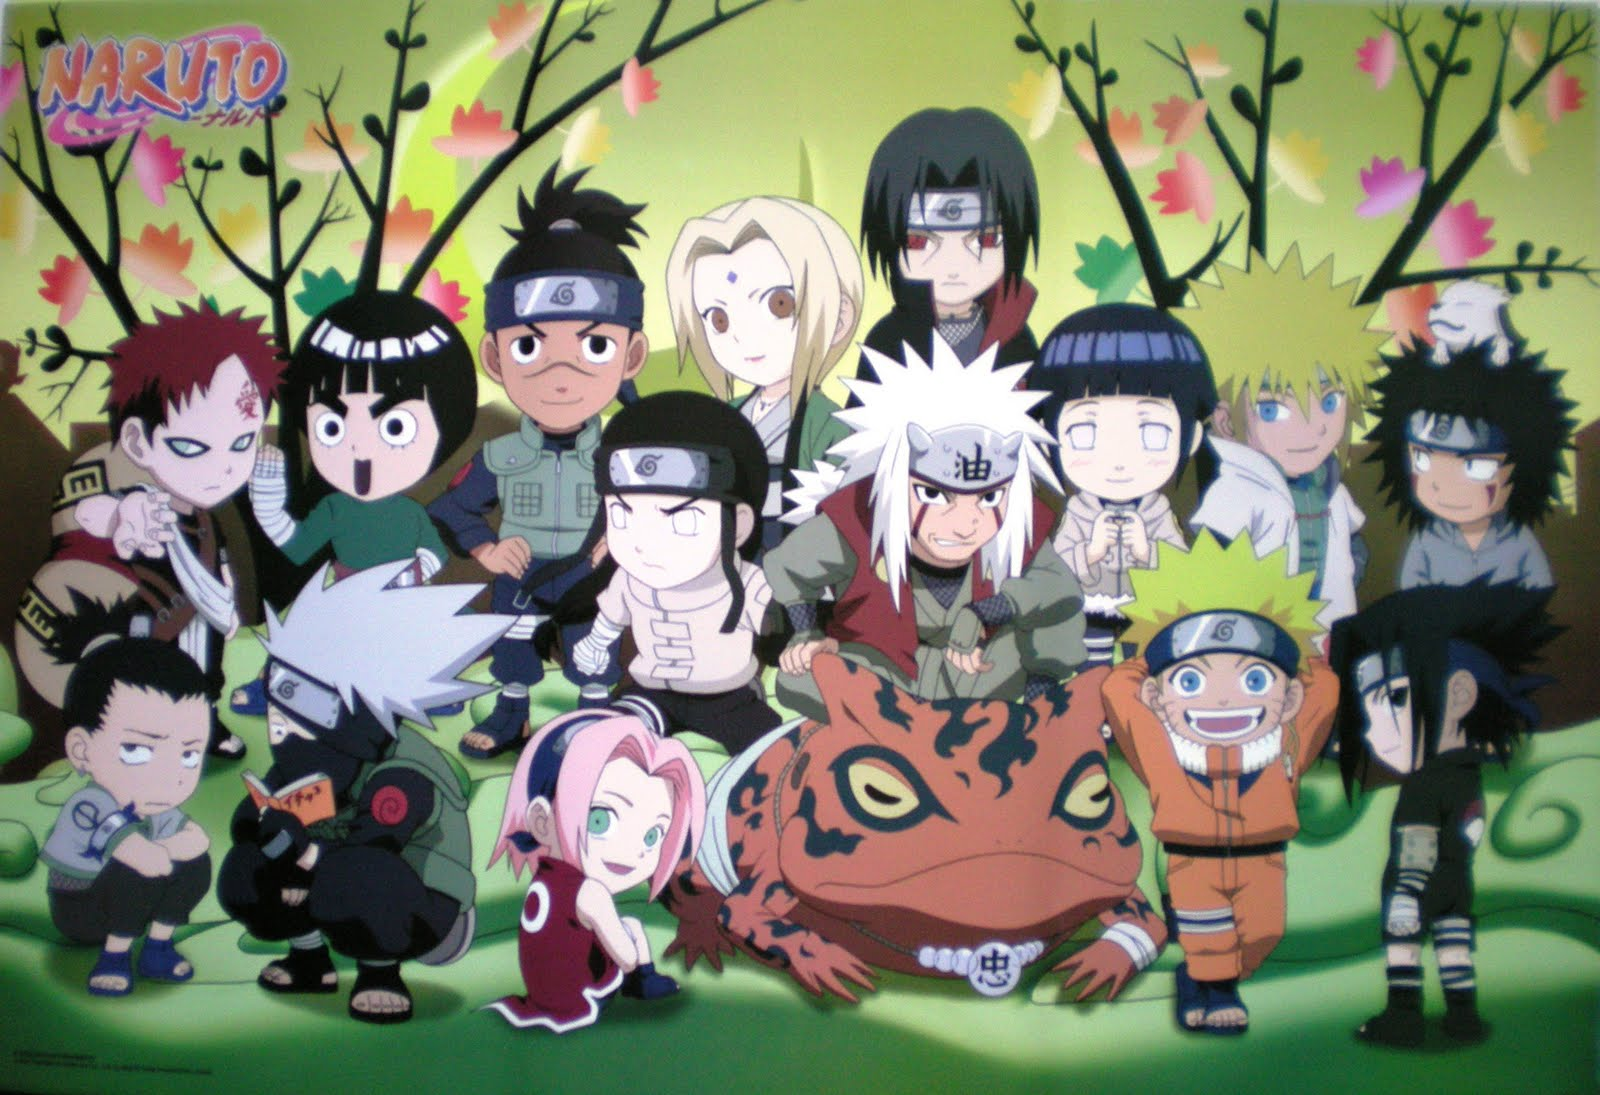 Naruto Shippuden Episode 257 English Subbed Free Download Whatpeace